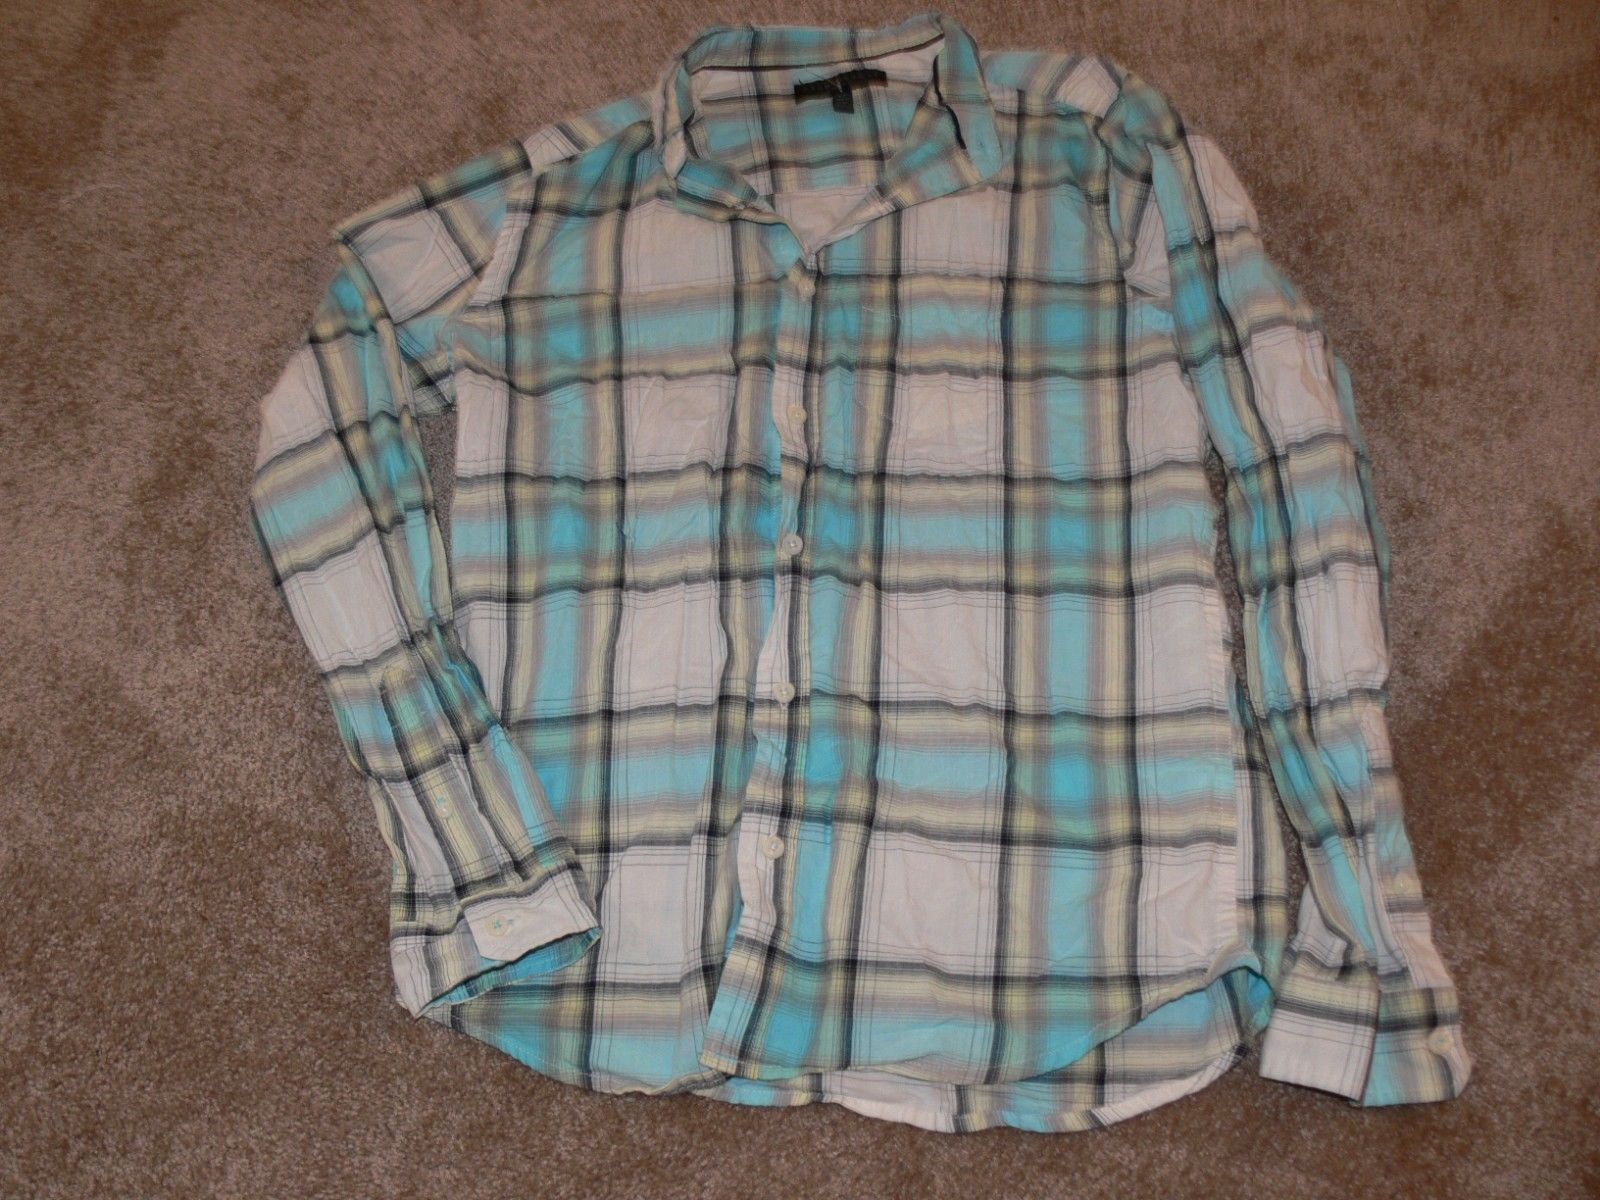 Primary image for AEROPOSTALE Plaid Button Front Shirt Long Sleeve Women's Size Small ek